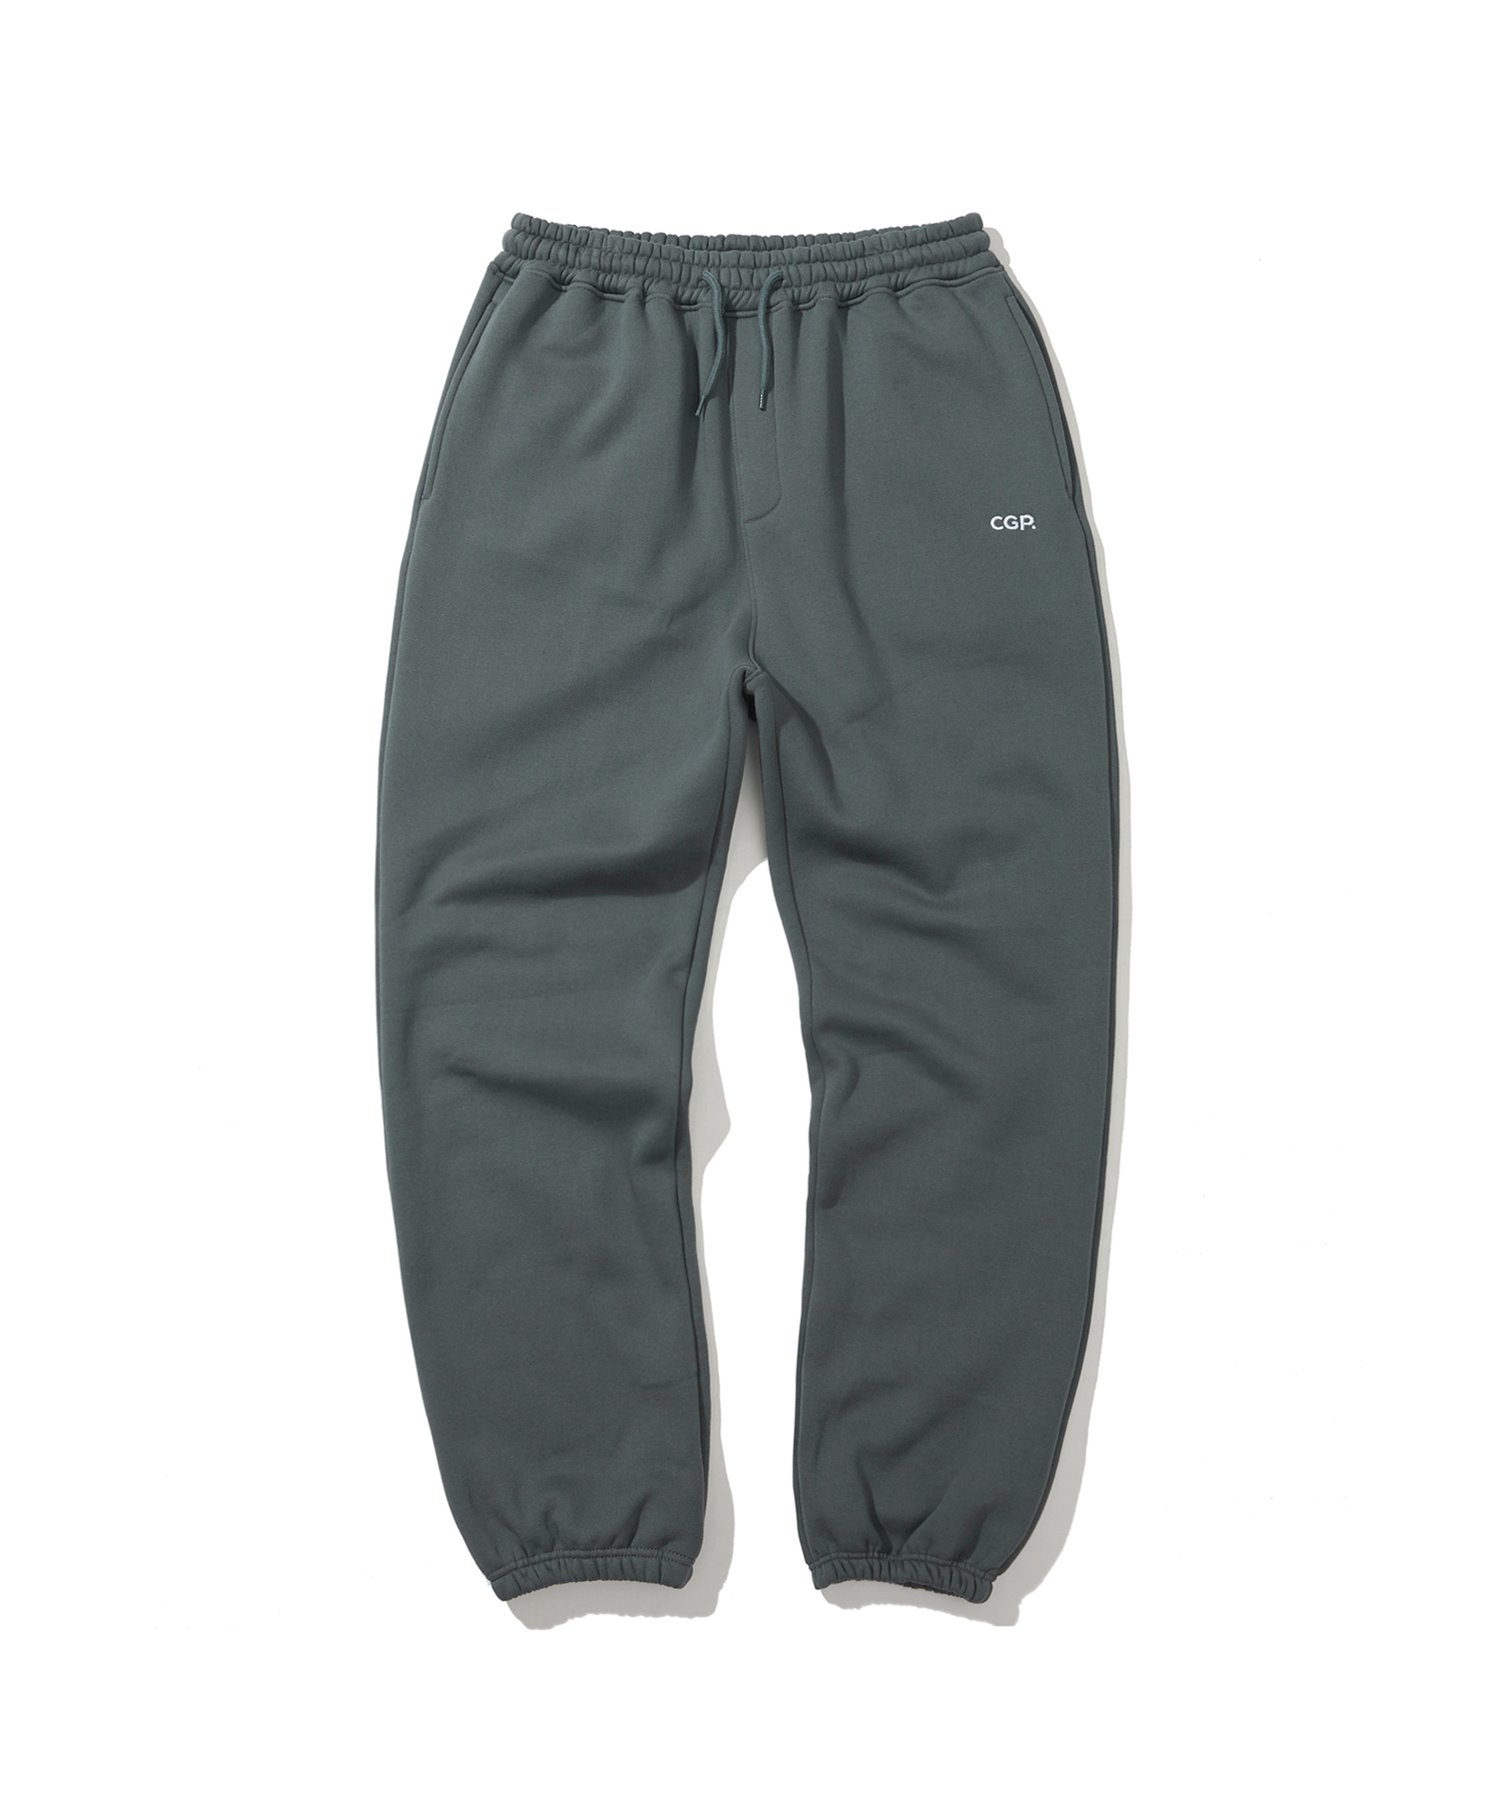 CGP BASIC TRAINING PANTS - CH